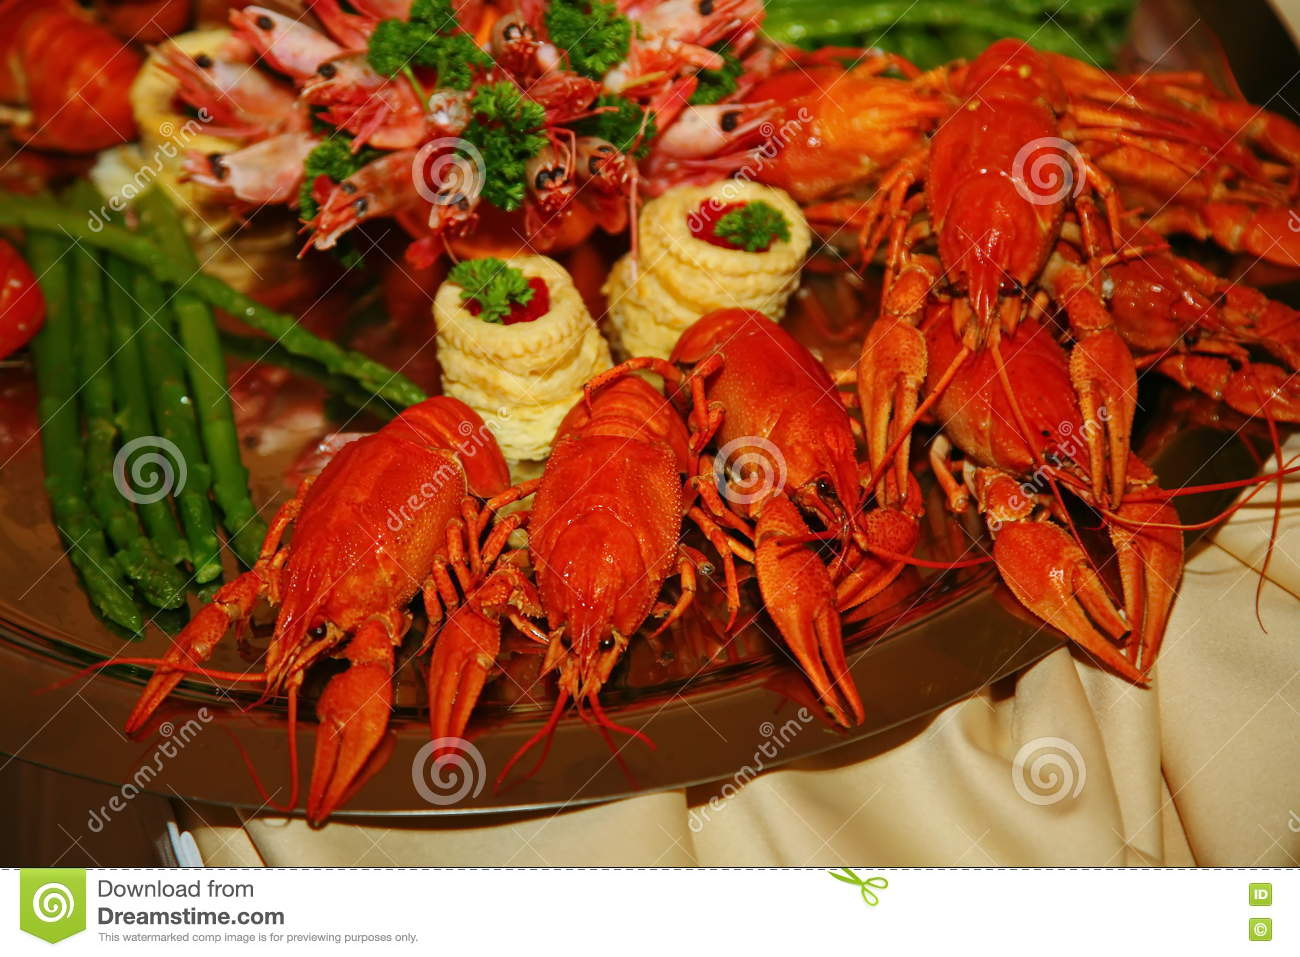 Artistically decorated with red boiled cancer with asparagus and prawns is a delicacy from the chef - a dish of venison.